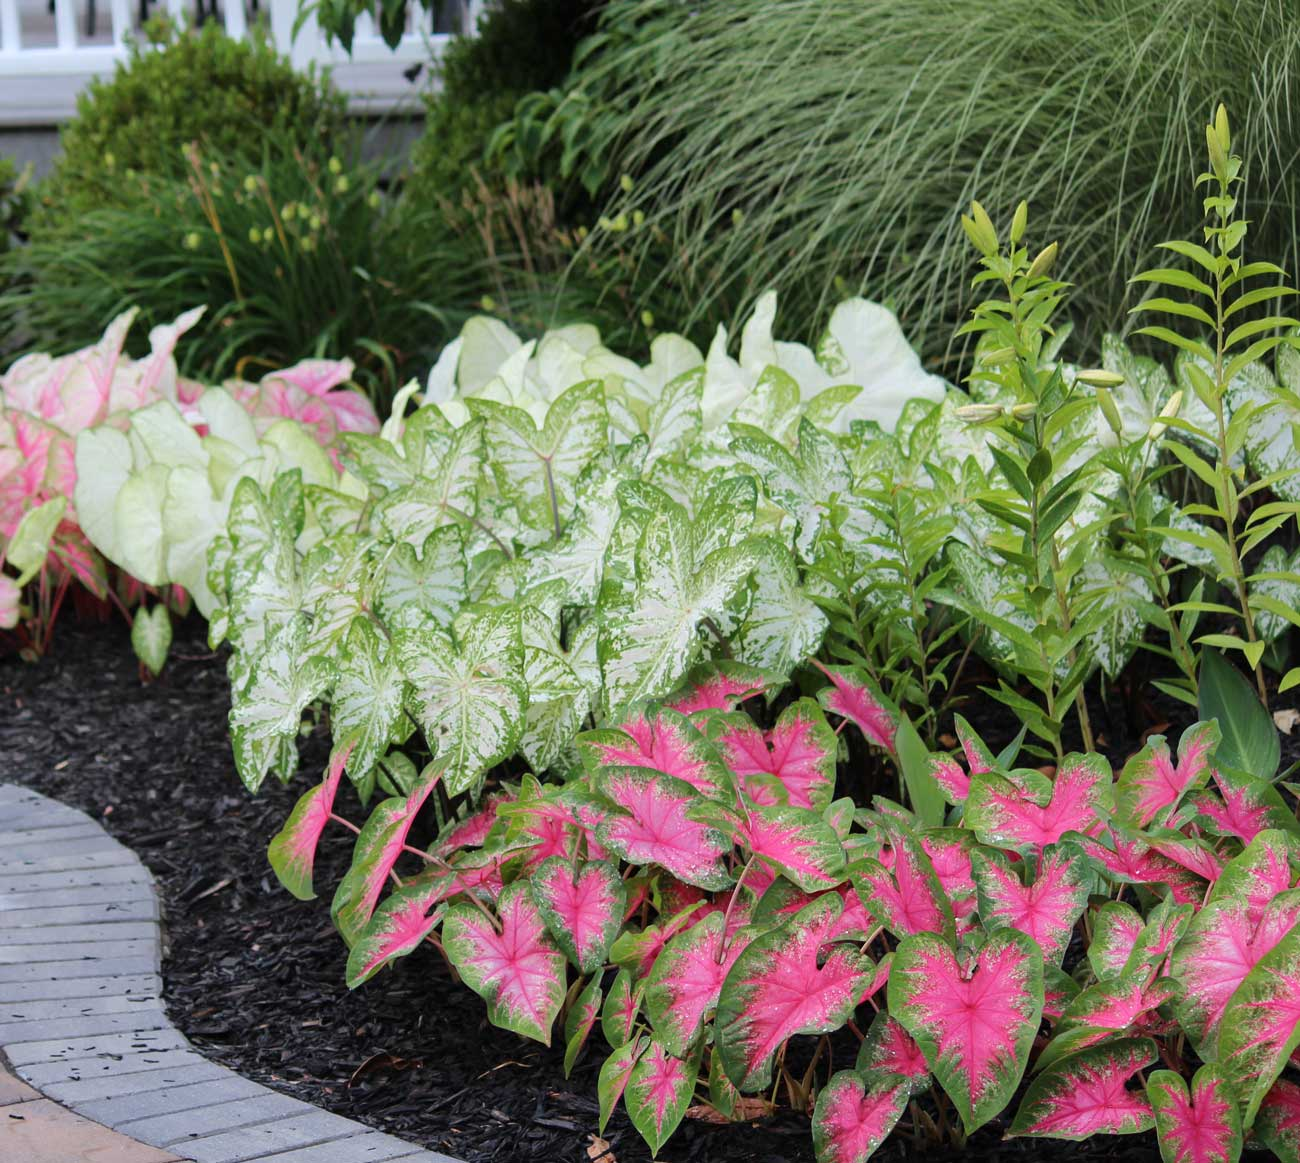 10 Bulb Garden Design Ideas: Landscaping Made Easy With Caladiums